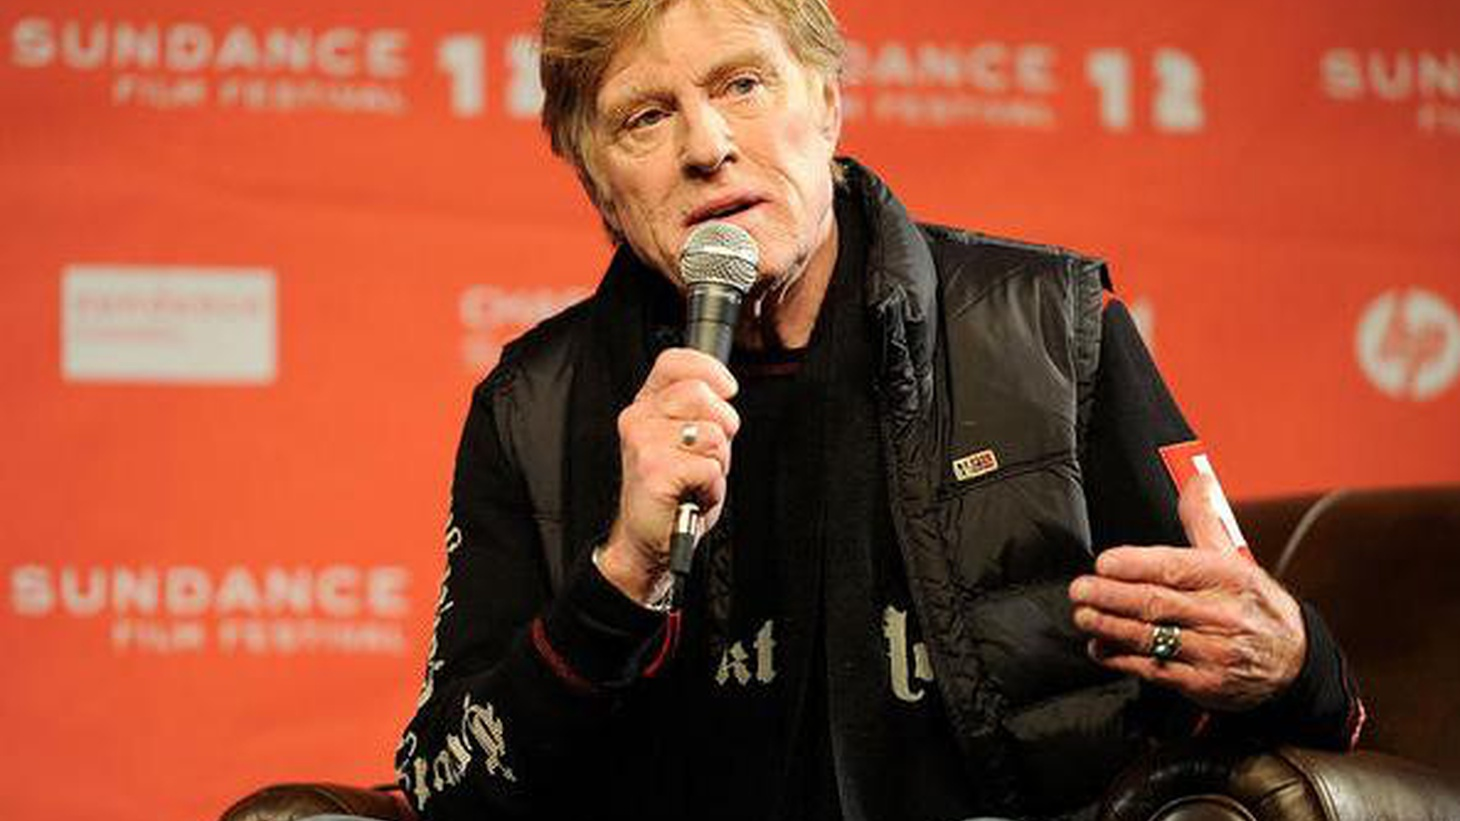 """Robert Redford says his new theater complex fulfills his dream of building a movie theater in his """"home town."""" We talk about Hollywood and the world of independent films."""